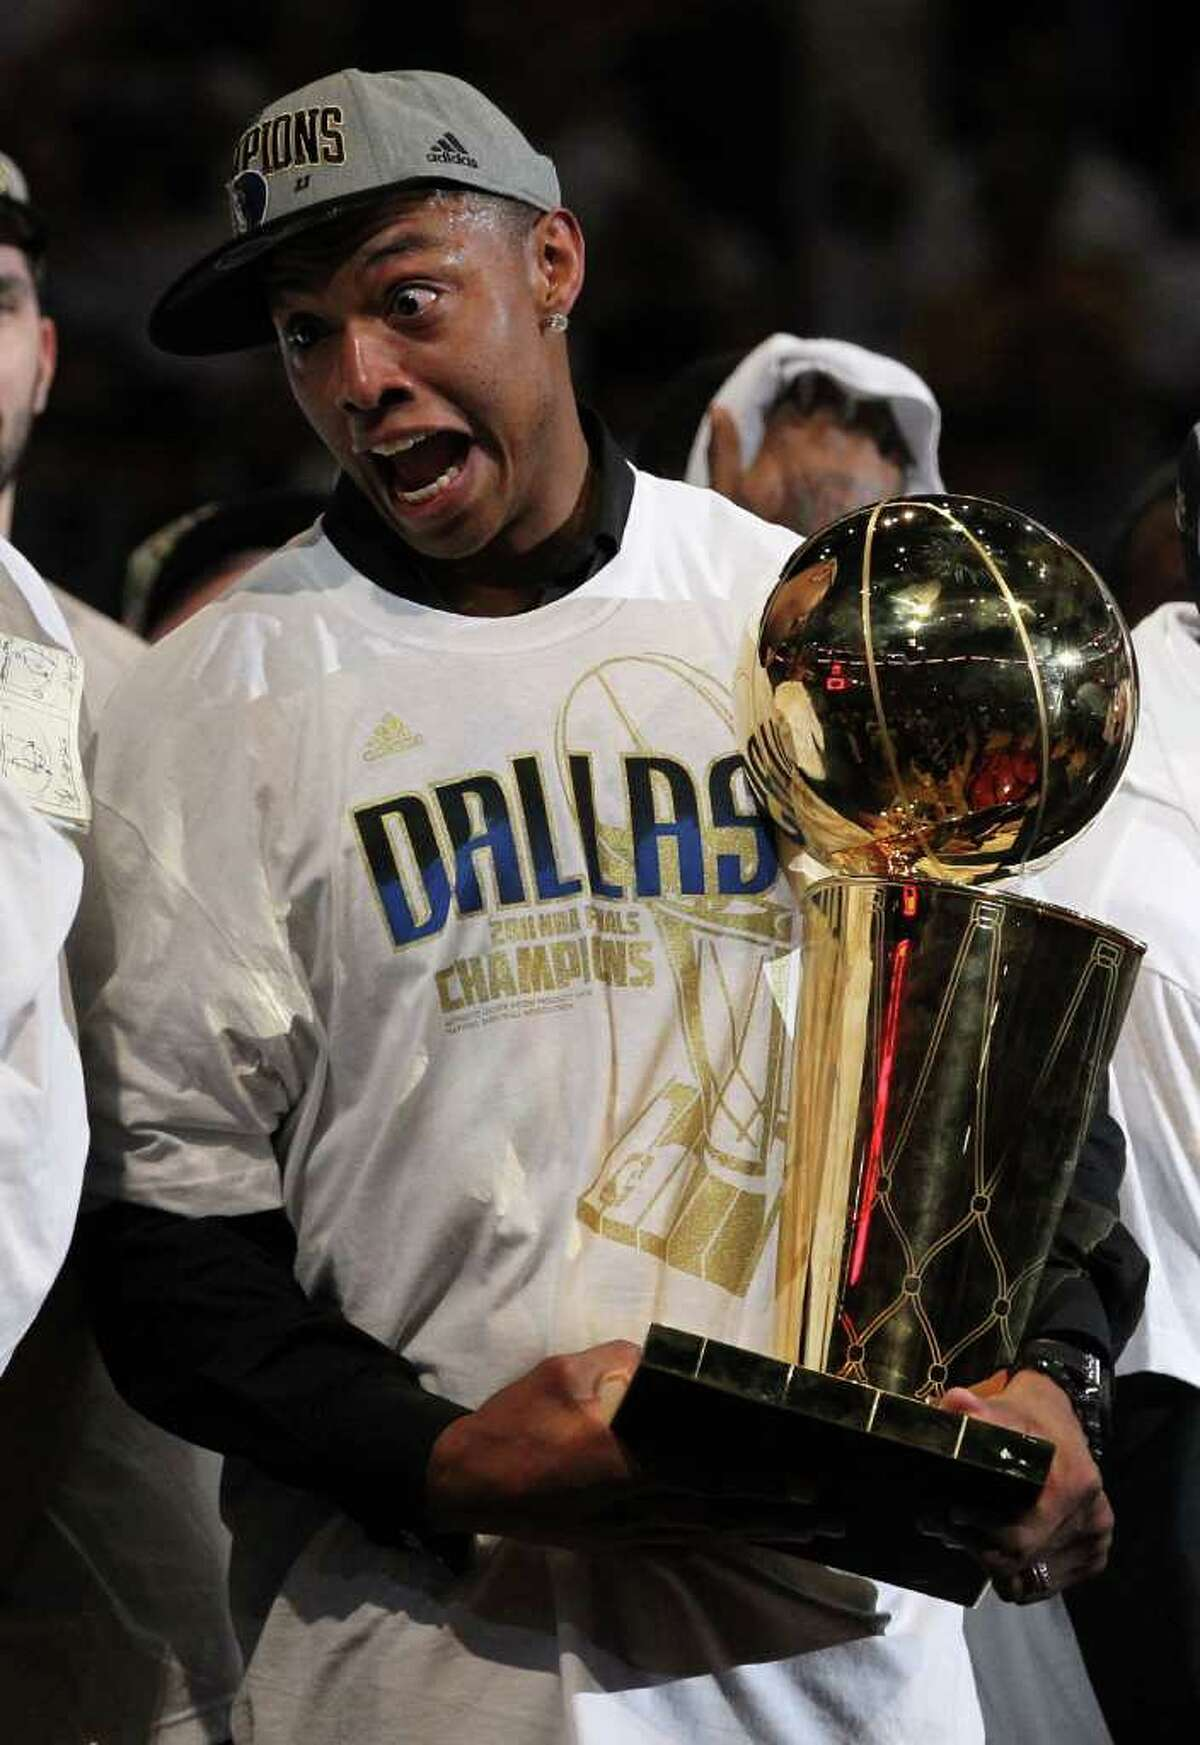 Despite missing the series due to a season-ending knee injury in January, Caron Butler earned his first NBA championship ring with the Dallas Mavericks. Above, he celebrates with the Larry O'Brien trophy after the Mavericks won 105-95 against the Miami Heat in Game Six of the 2011 NBA Finals at American Airlines Arena on June 12, 2011 in Miami, Florida. (Photo by Ronald Martinez/Getty Images)